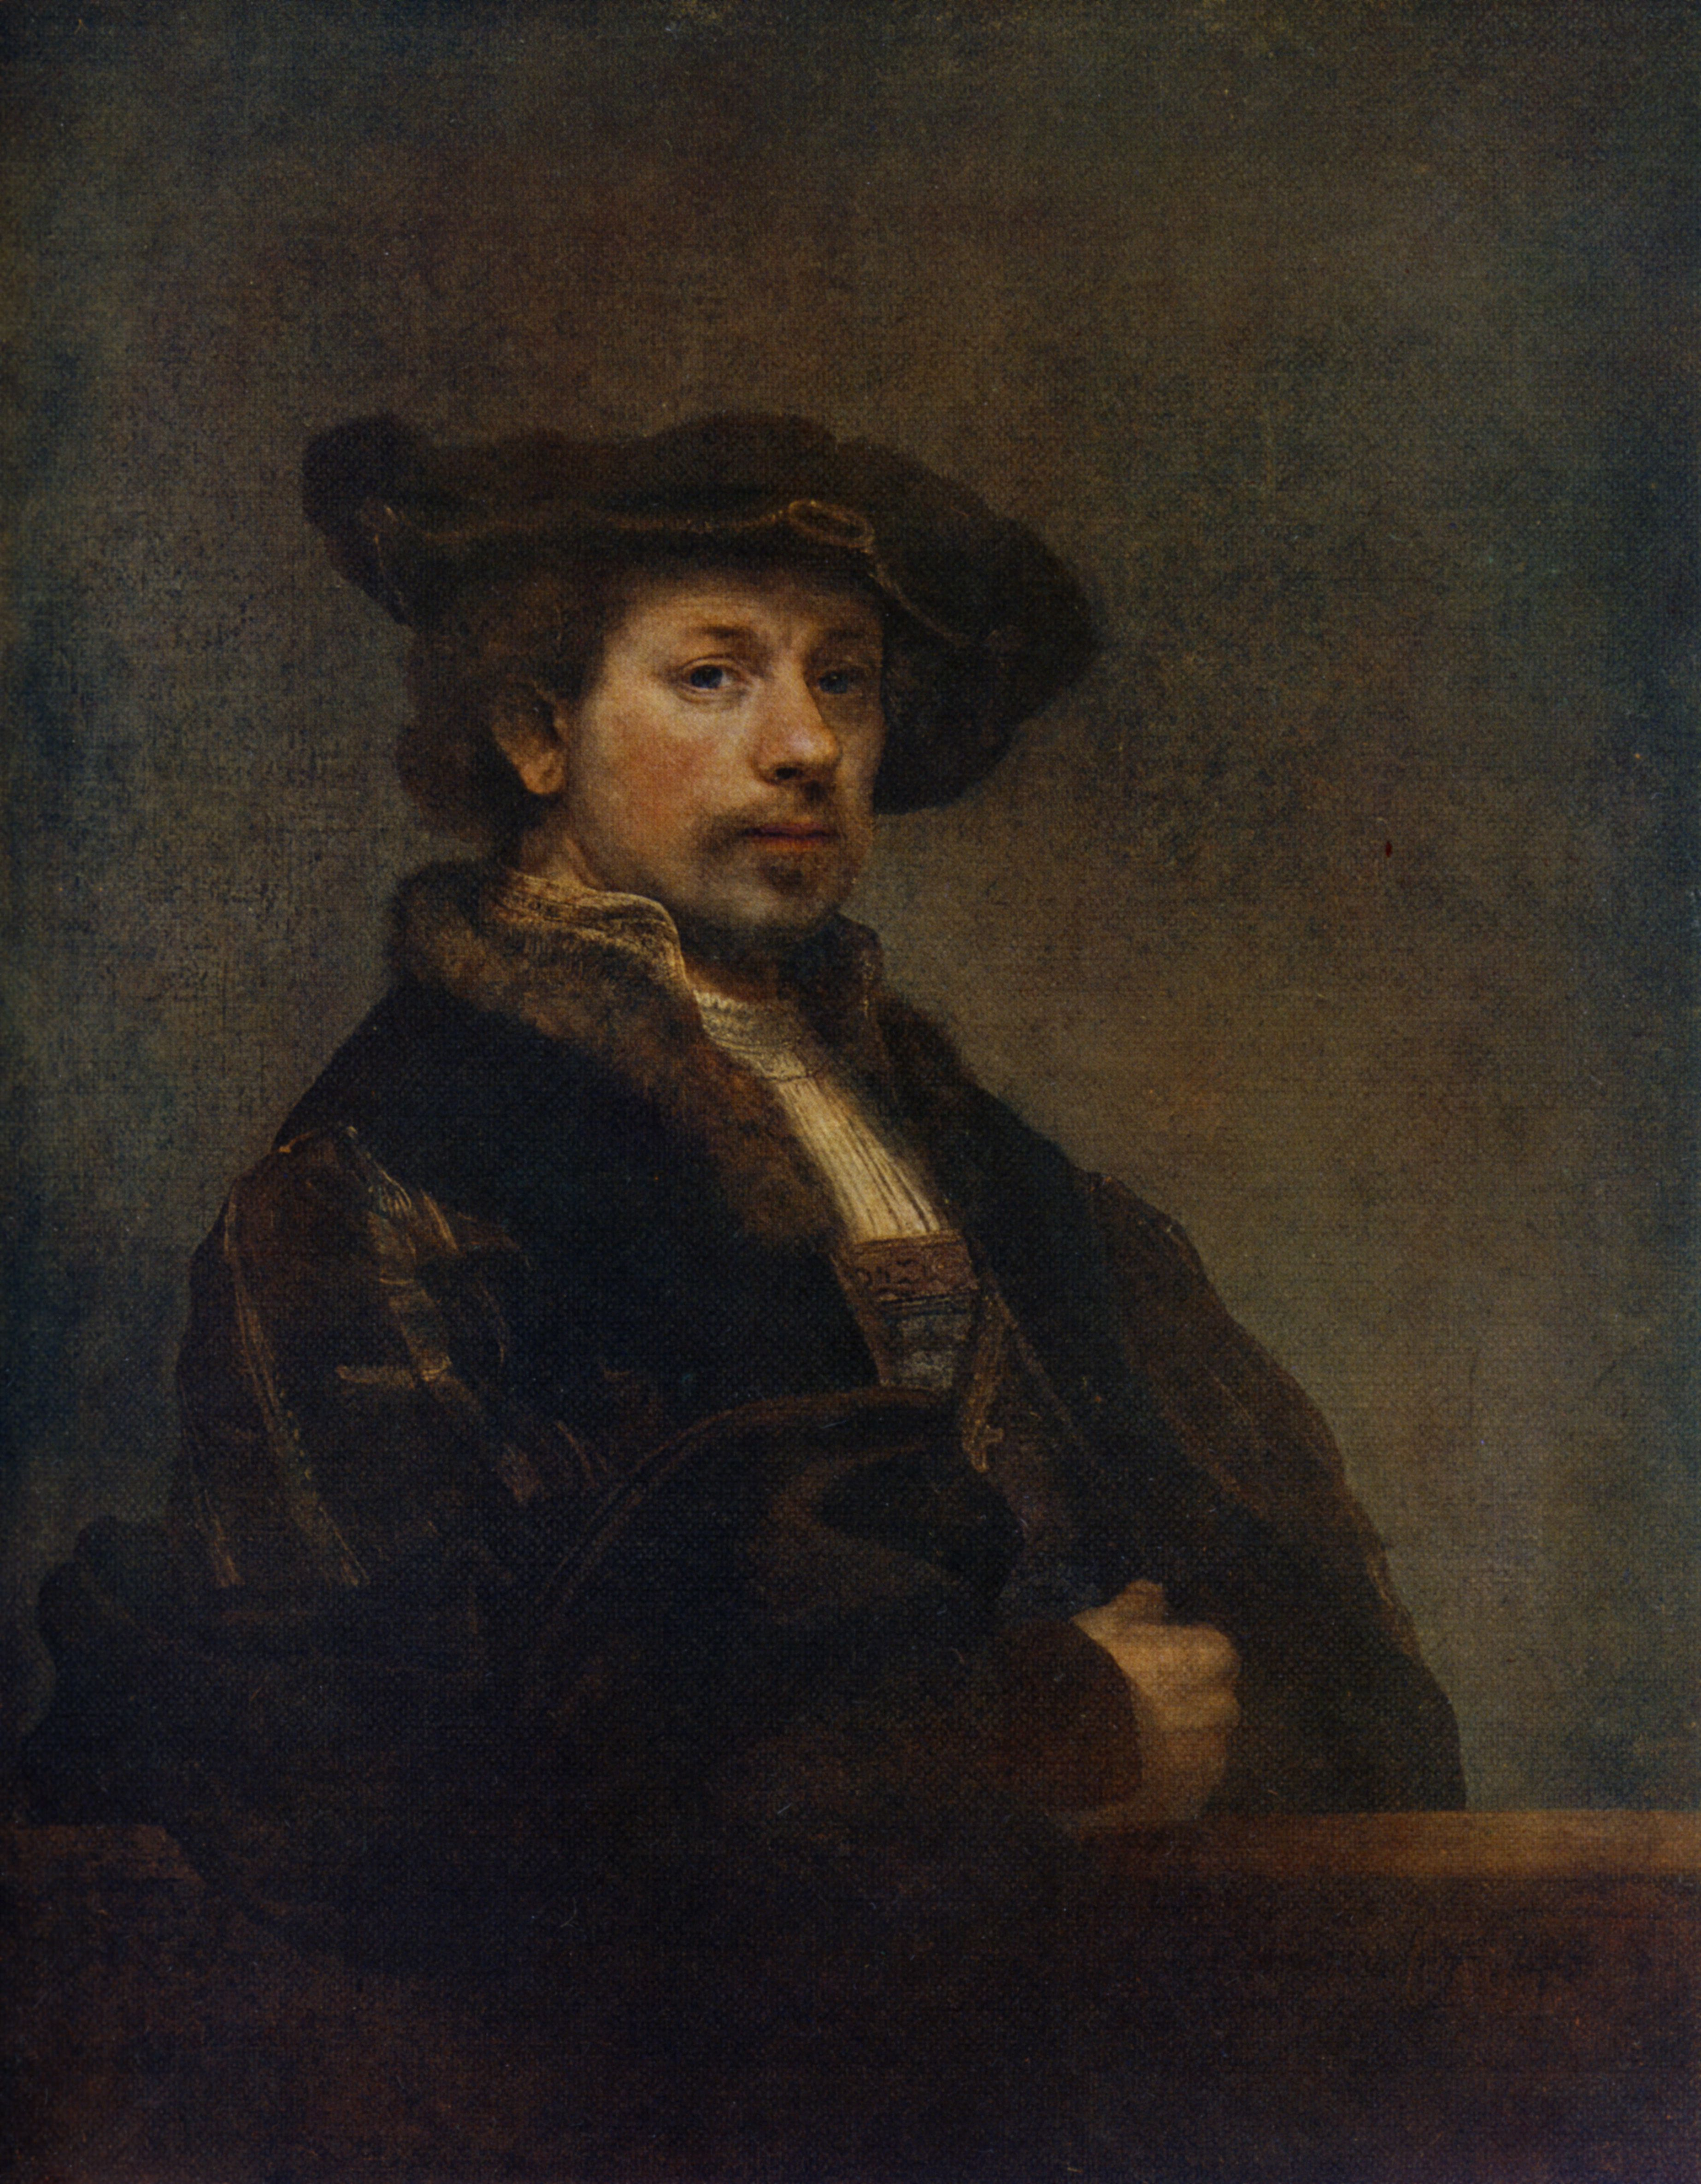 Rembrandt Self-Portrait at the Age of 34